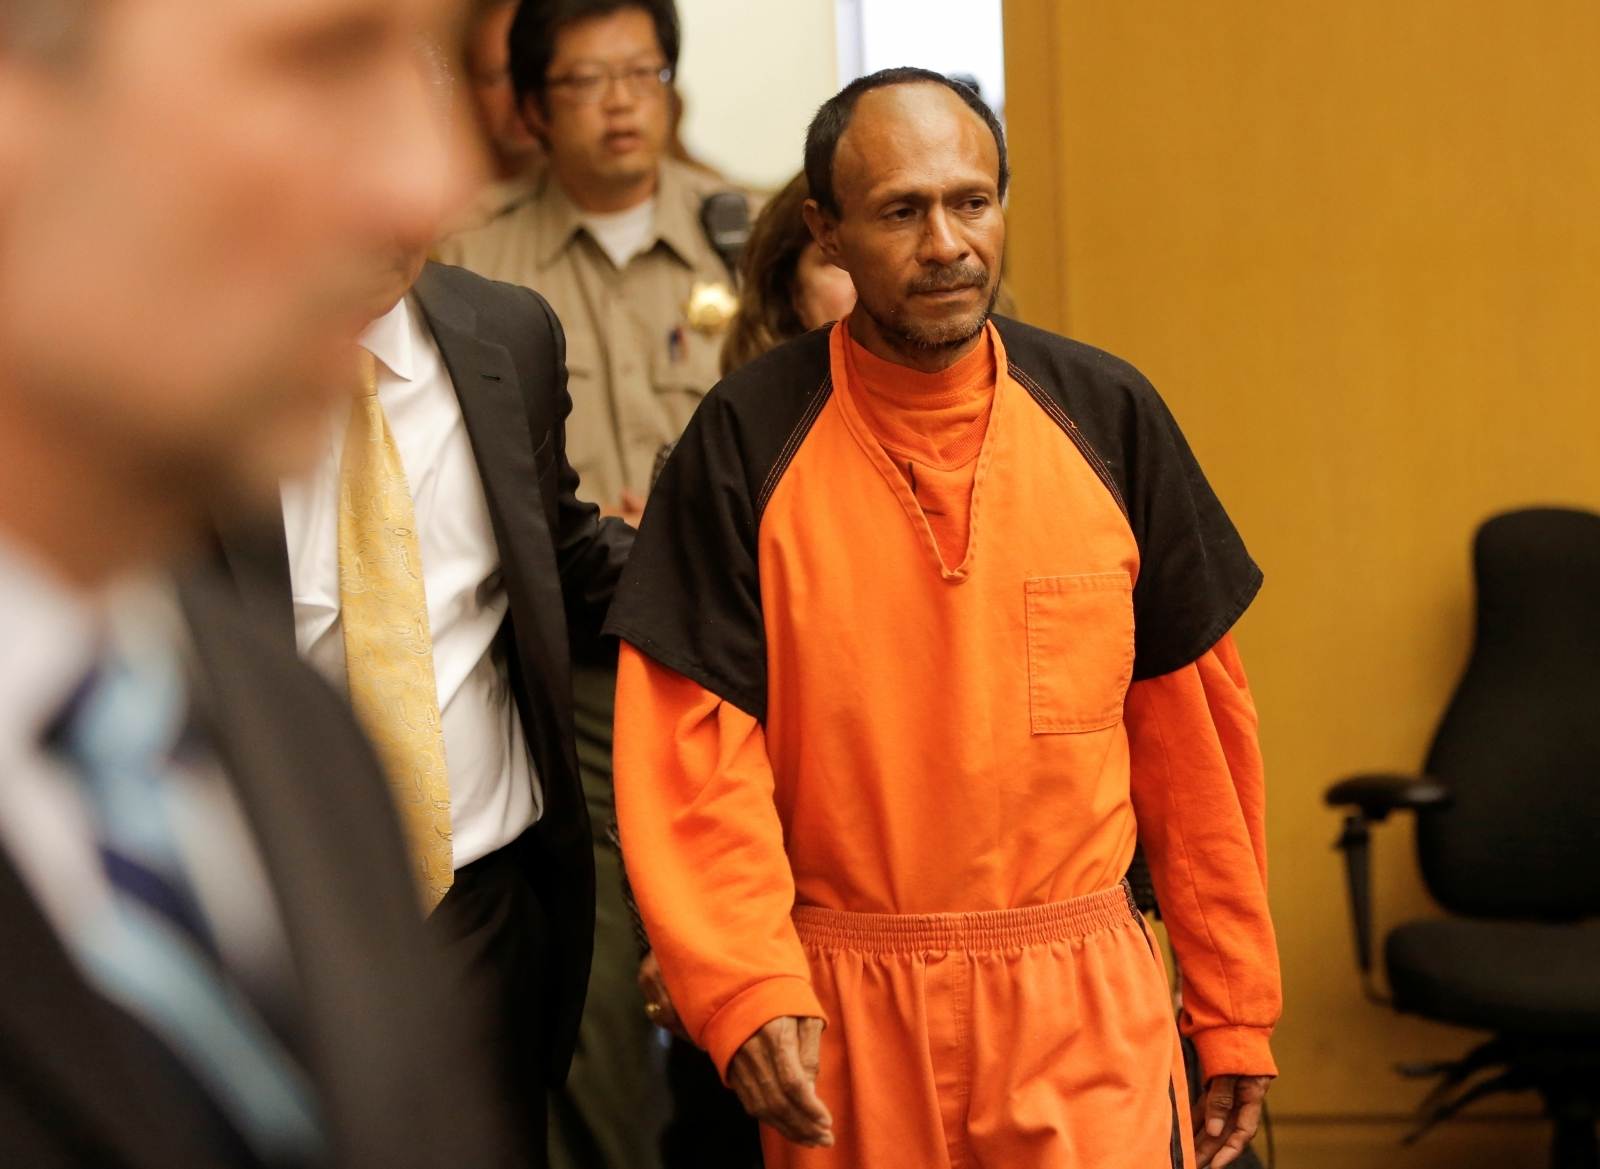 'No Justice': Verdict in Steinle Case Rekindles Immigration Debate